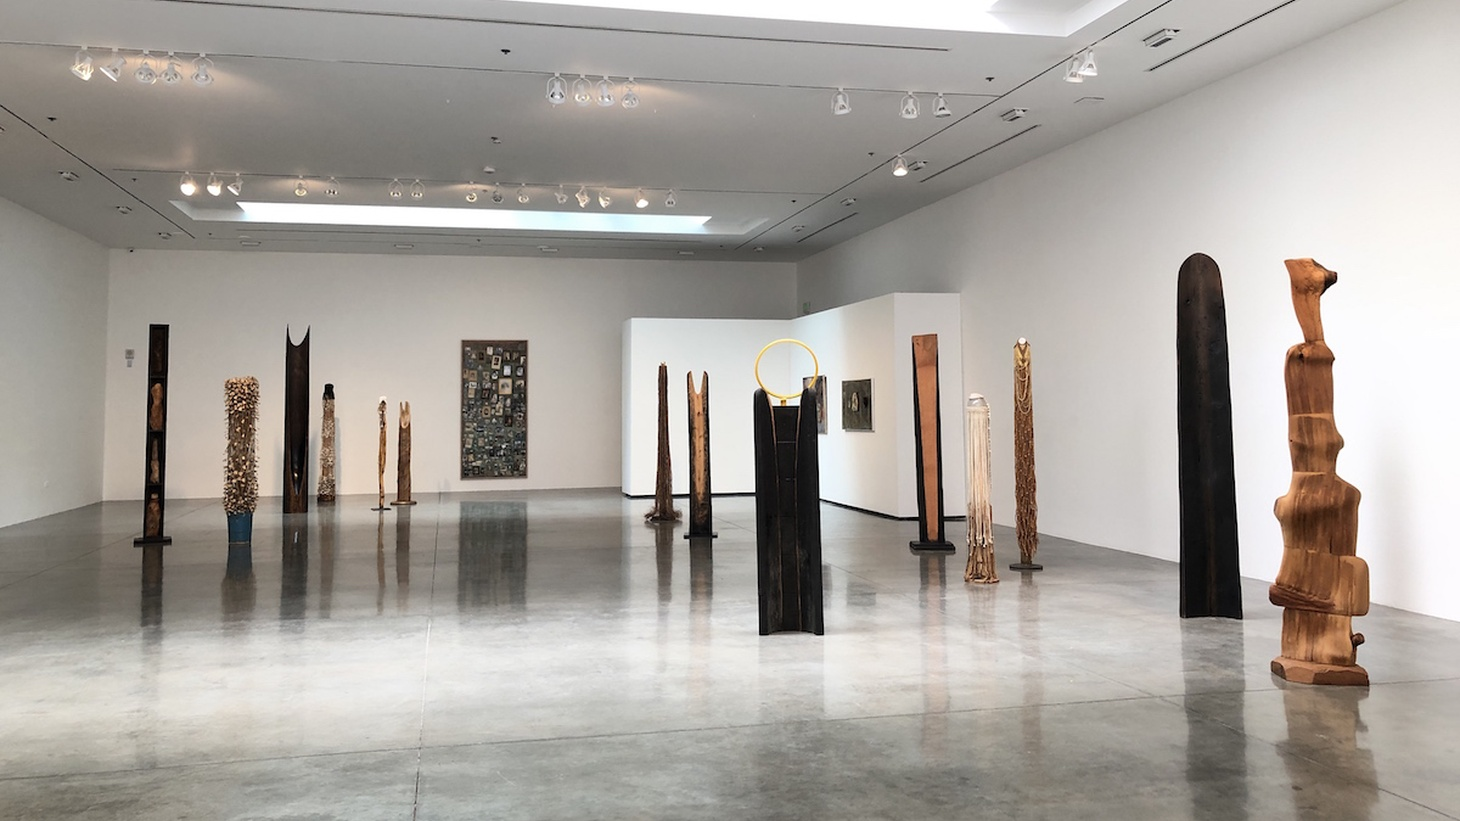 Edward Goldman talks about soul-searching exhibitions by two Los Angeles artists, Don Bachardy and Kenzi Shiokava.